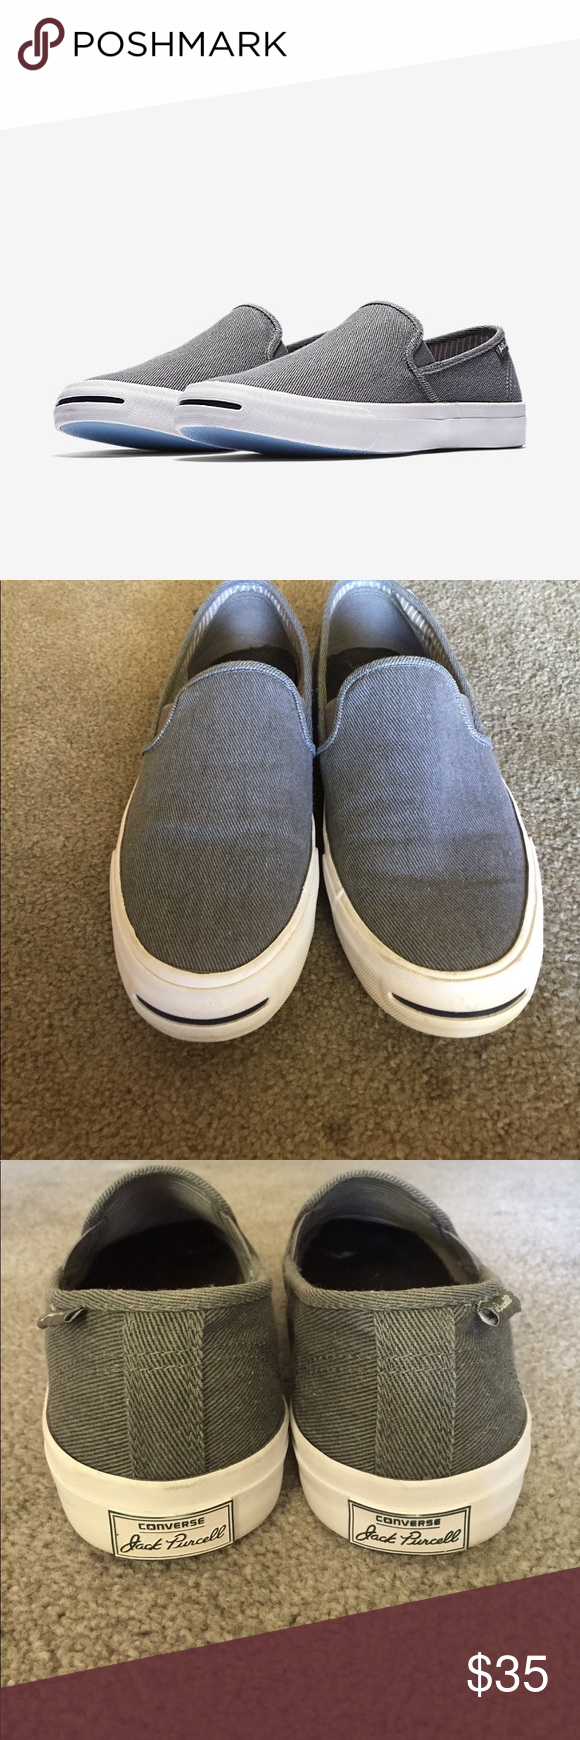 0b9eed94cd00d3 Converse Jack Purcell II Slip on Jack Purcell Signature slip-on low rise  shoes. Gray canvas style that have unnoticeable wear on the outside.